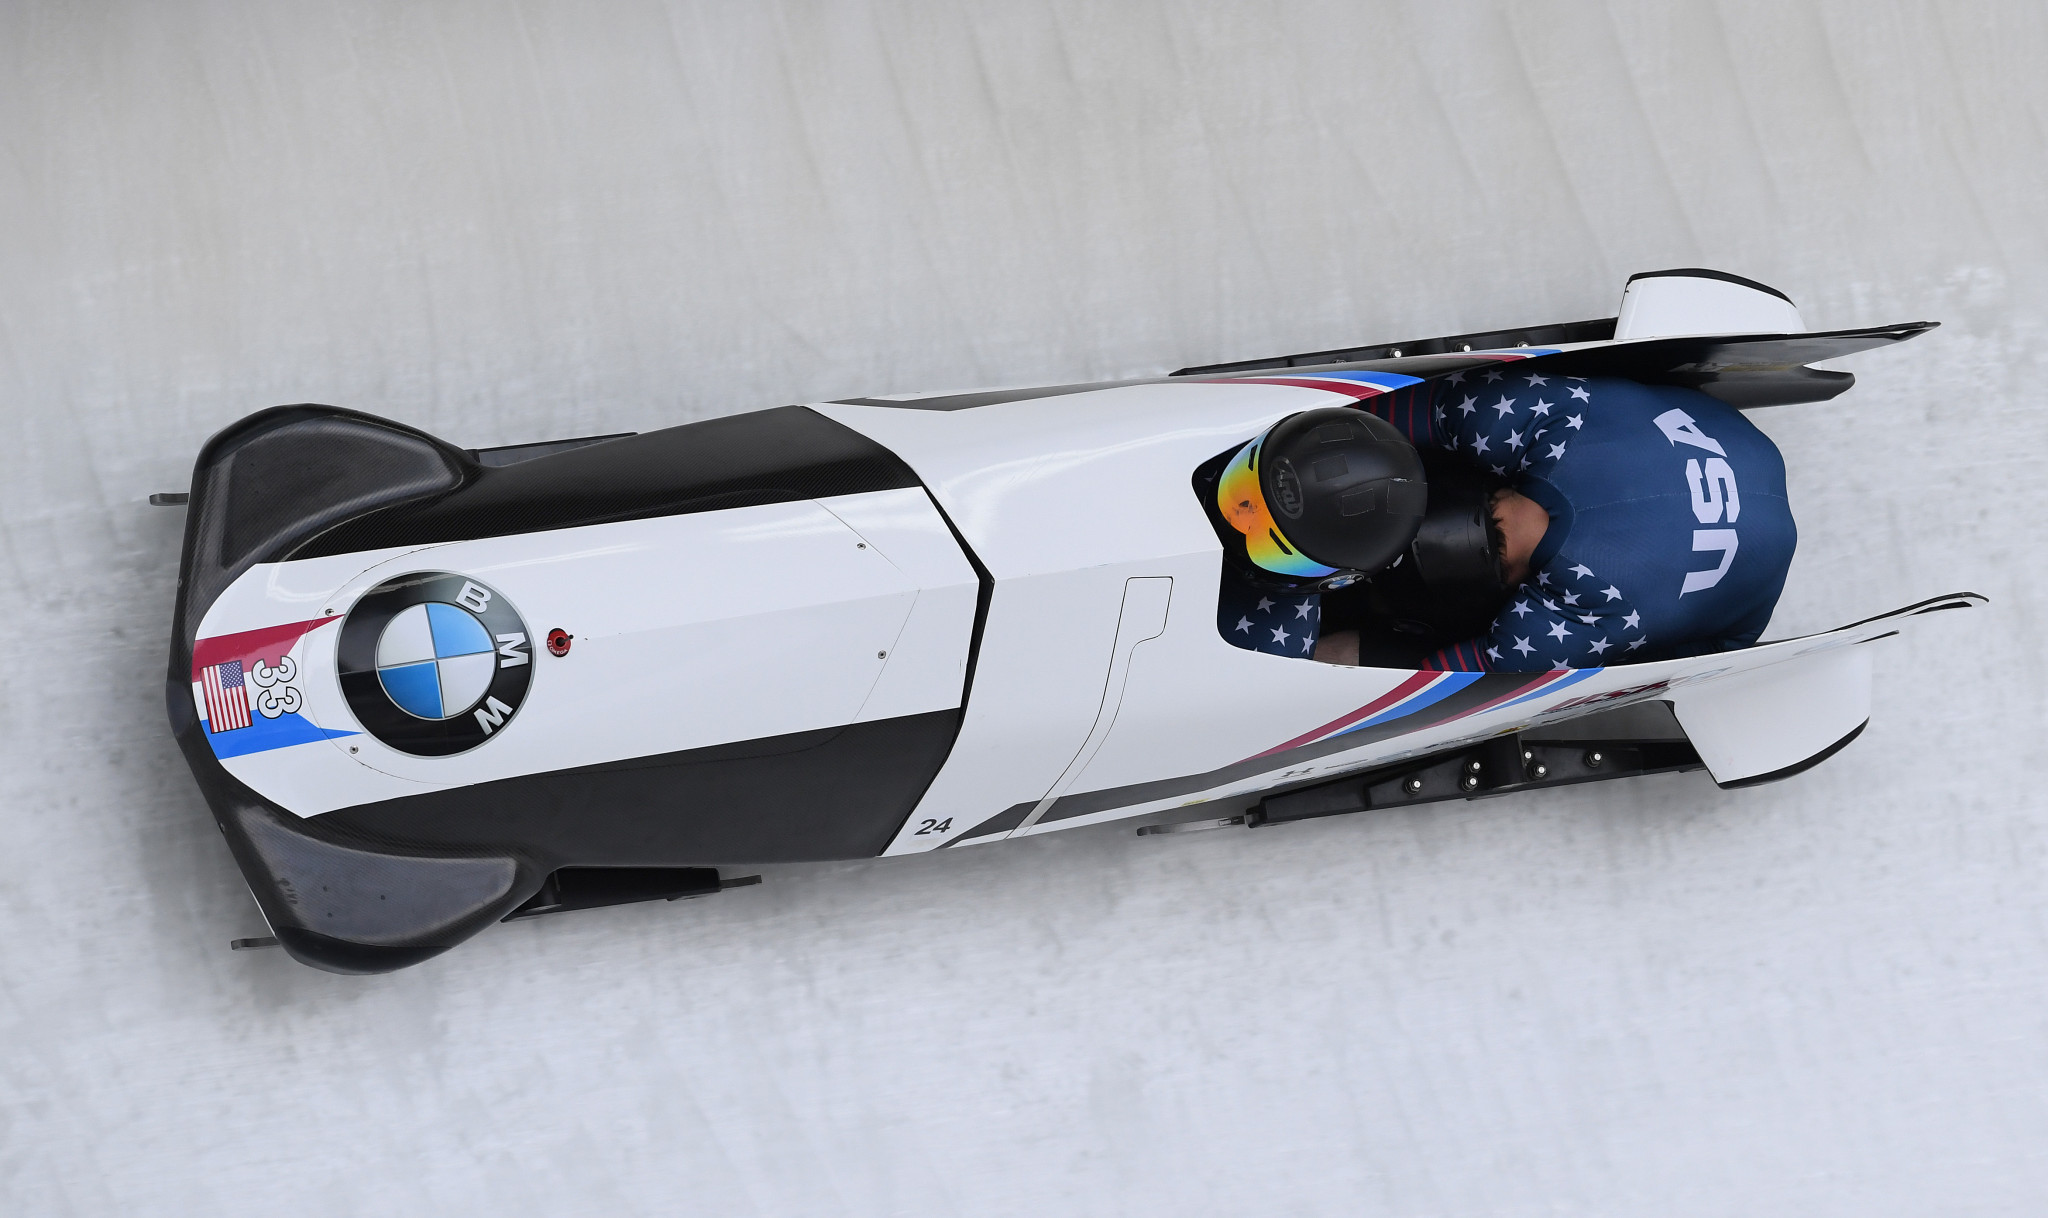 Codie Bascue and Carlo Valdes are among the 15 athletes named on the United States men's national bobsled team for the 2017-2018 season ©Getty Images